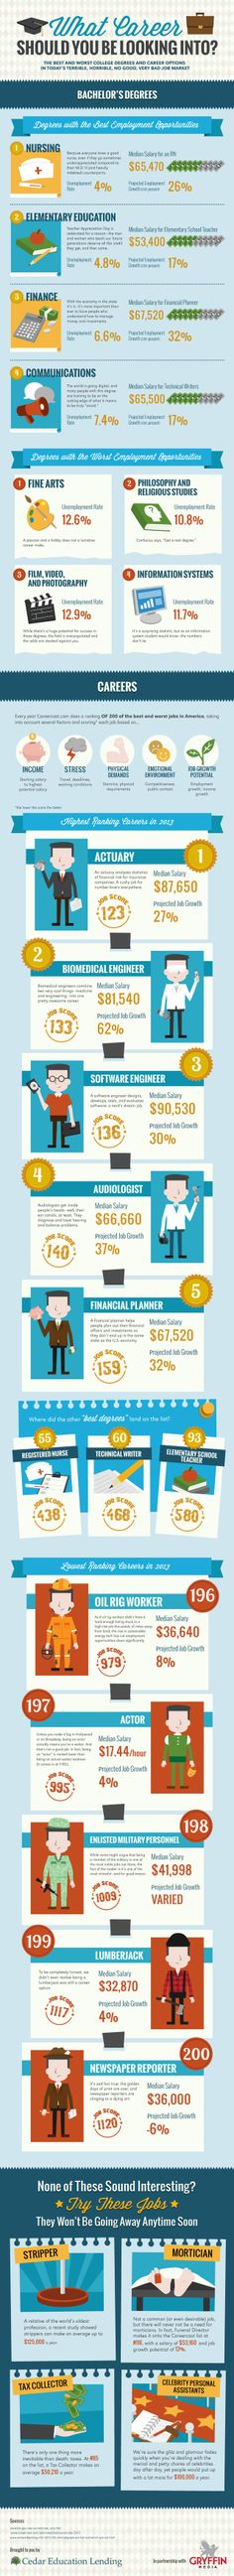 The Best and Worst Careers, Based on Job Outlook and Work Environment | #Infographic